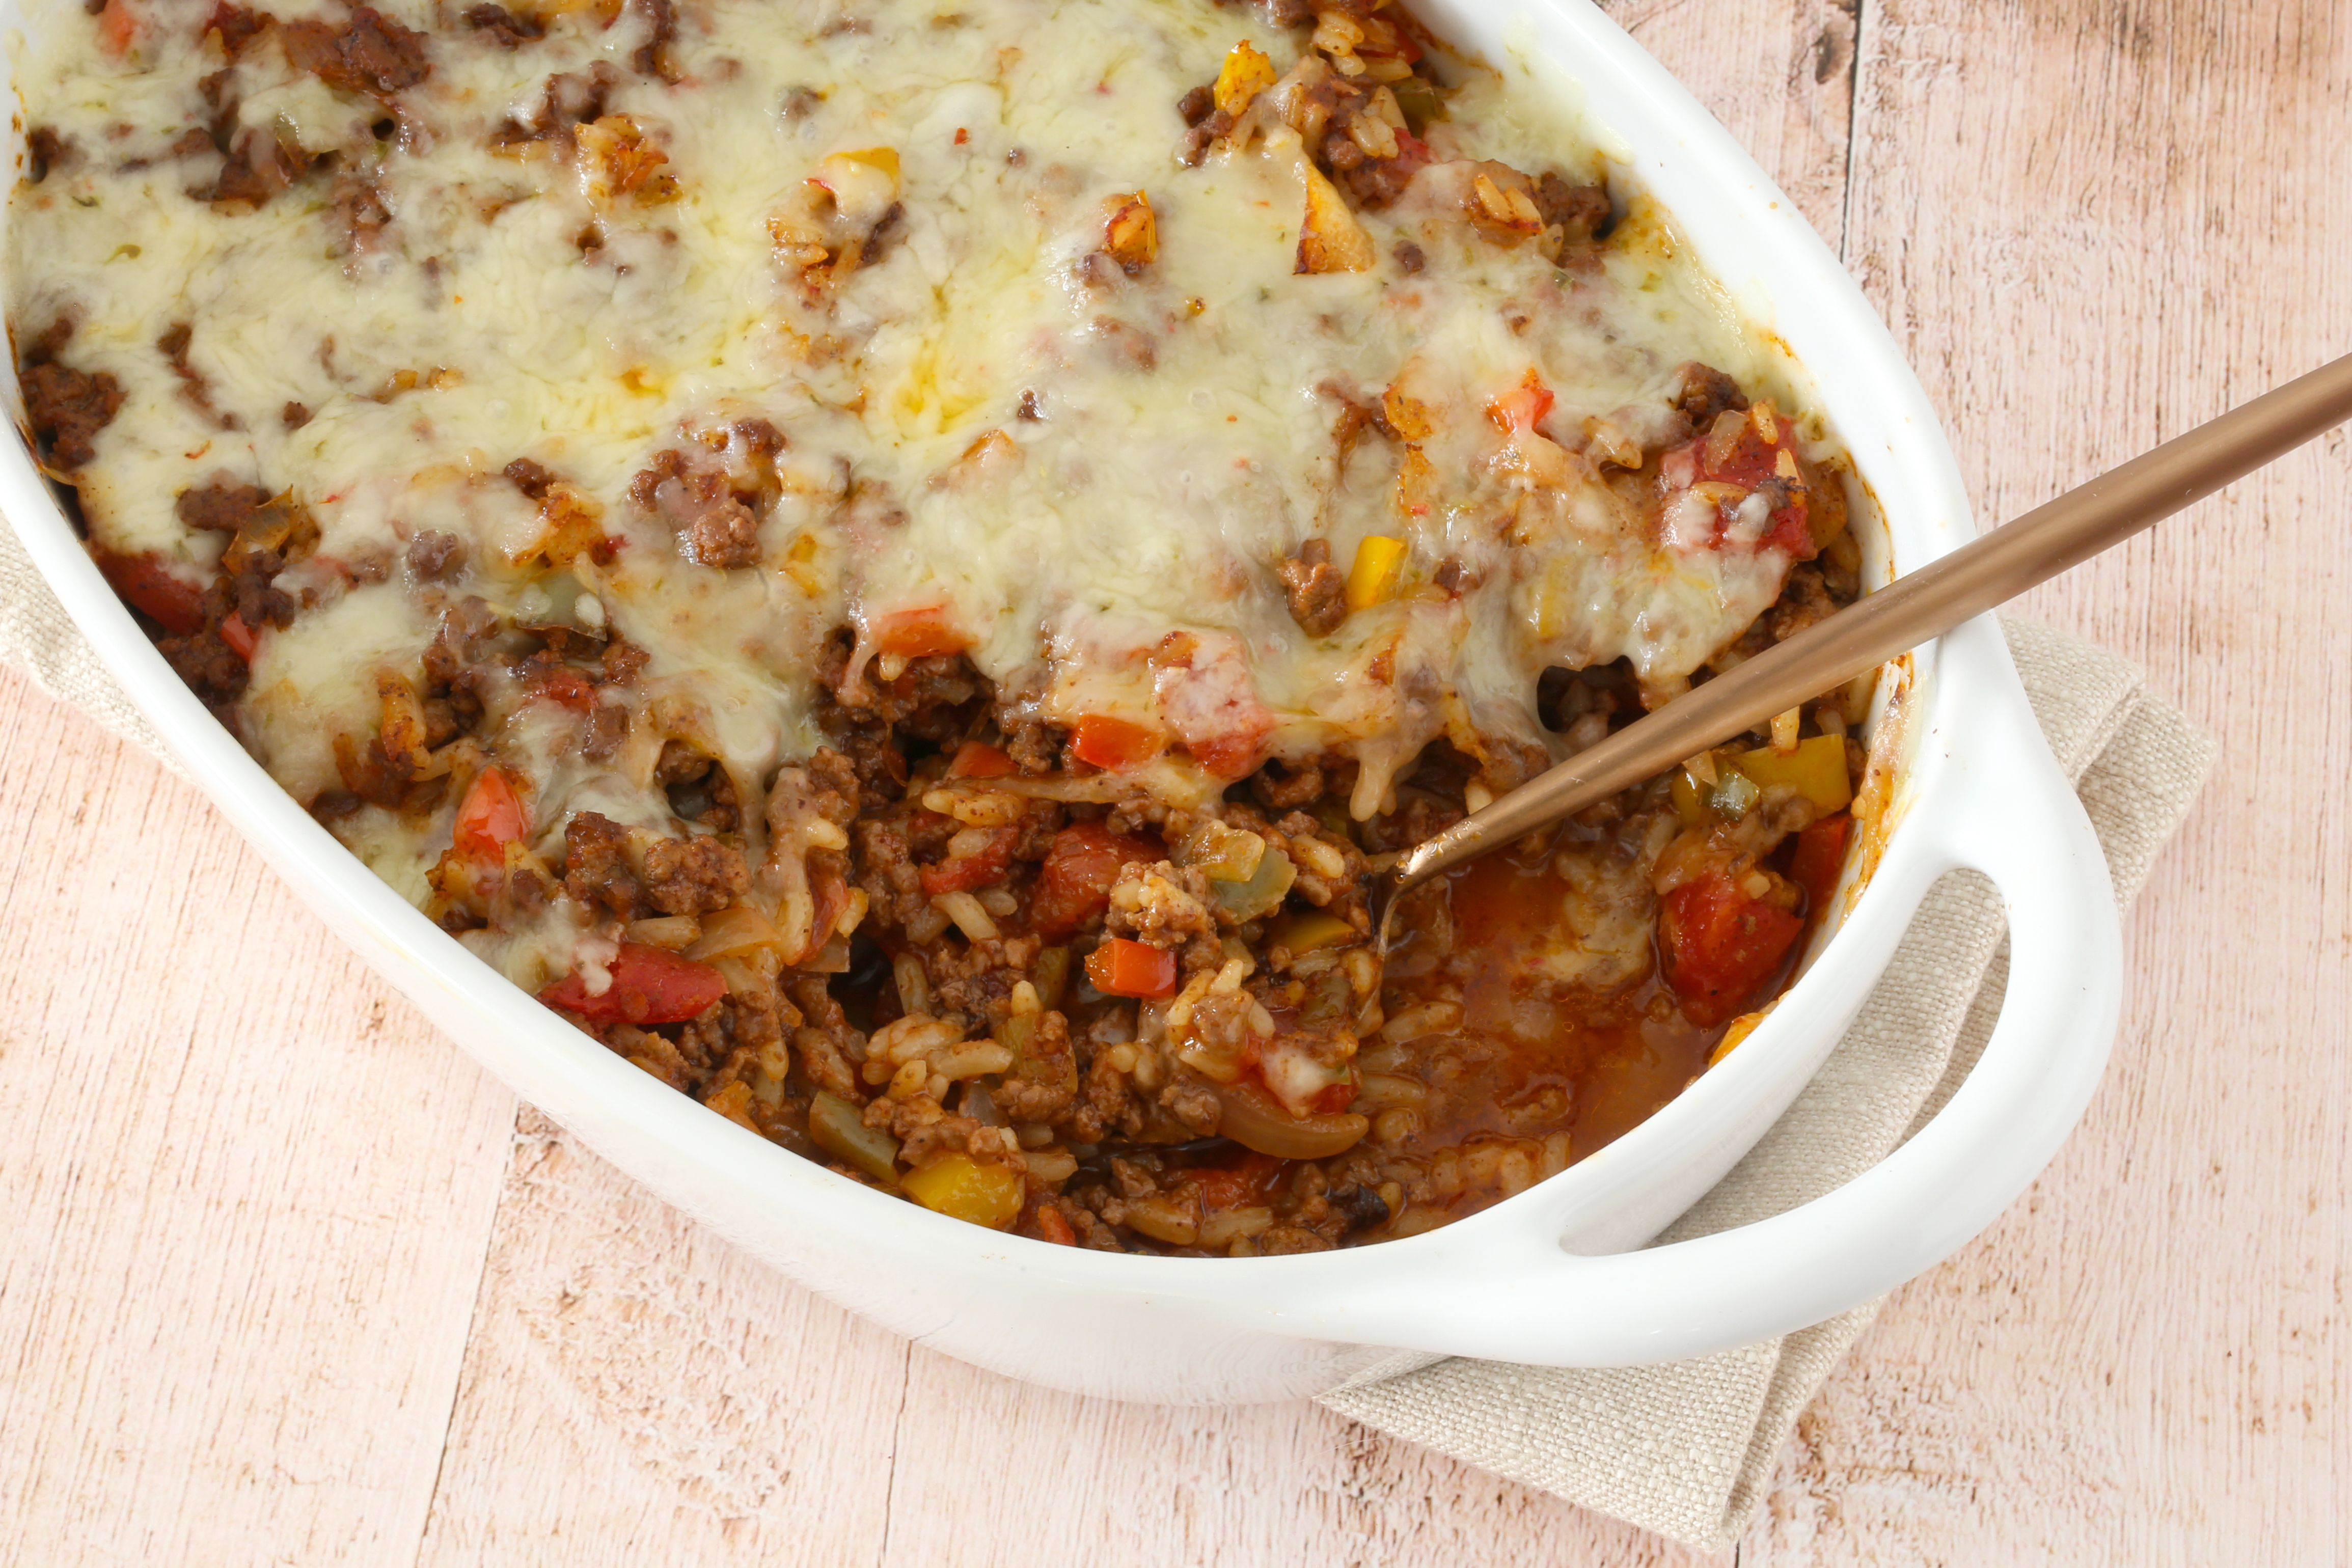 Ground beef and rice casserole with cheese topping.